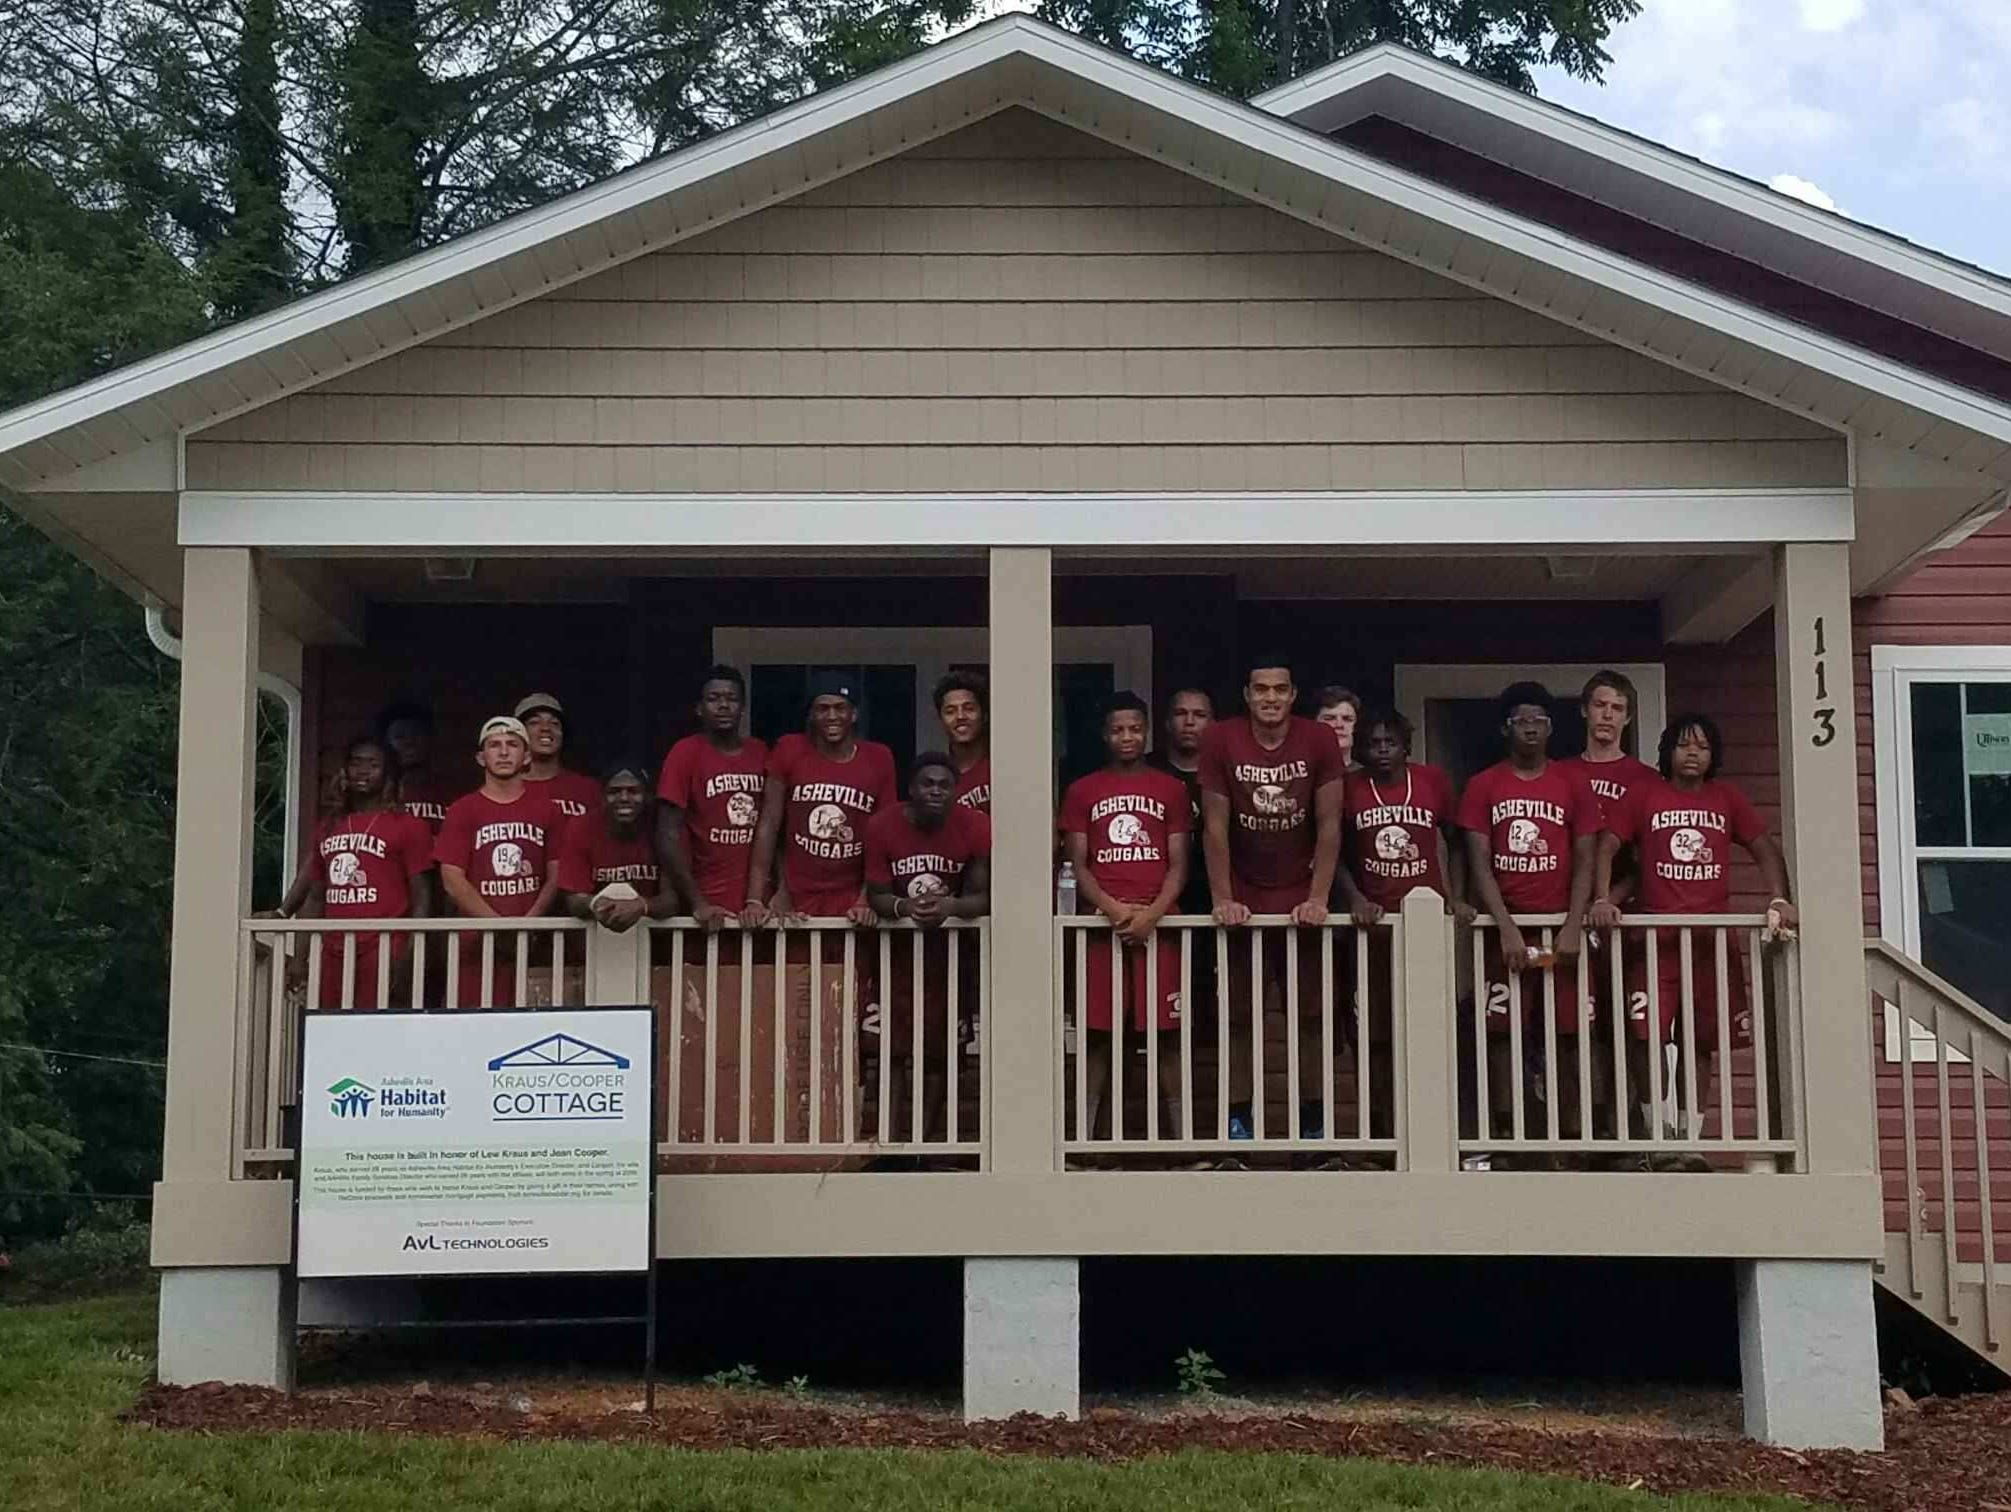 Asheville High football players volunteered their time Saturday for two local charities — Habitat for Humanity and MANNA FoodBank.